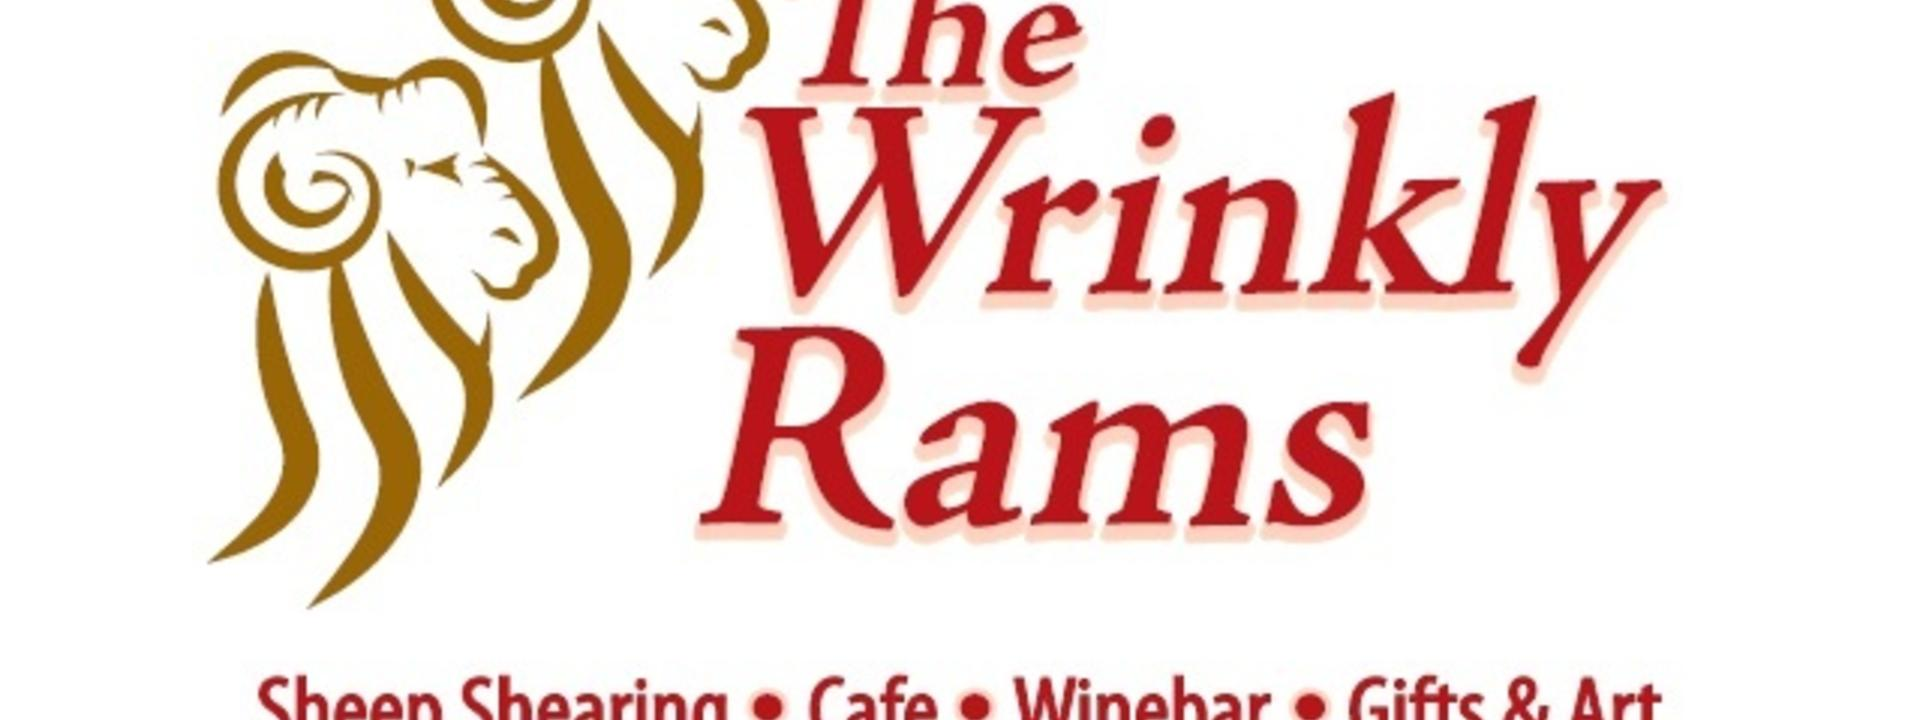 Logo: The Wrinkly Rams